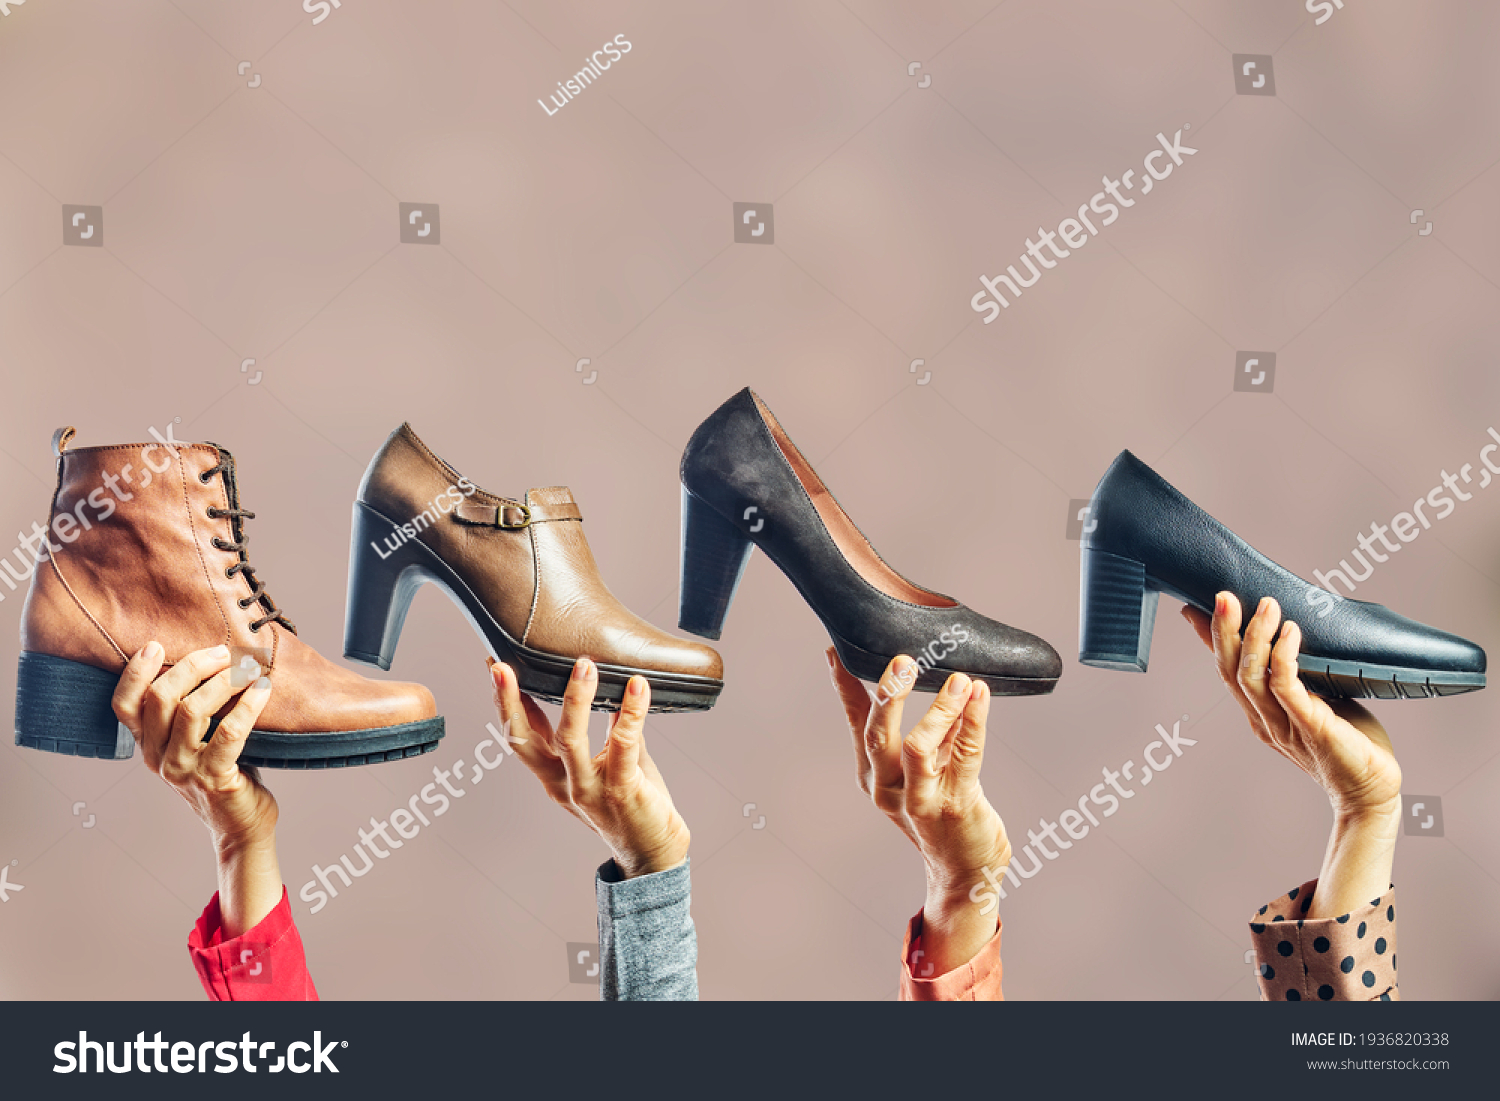 Hands holding different women shoes and boots. Concept of selection, purchase and repair of shoes #1936820338